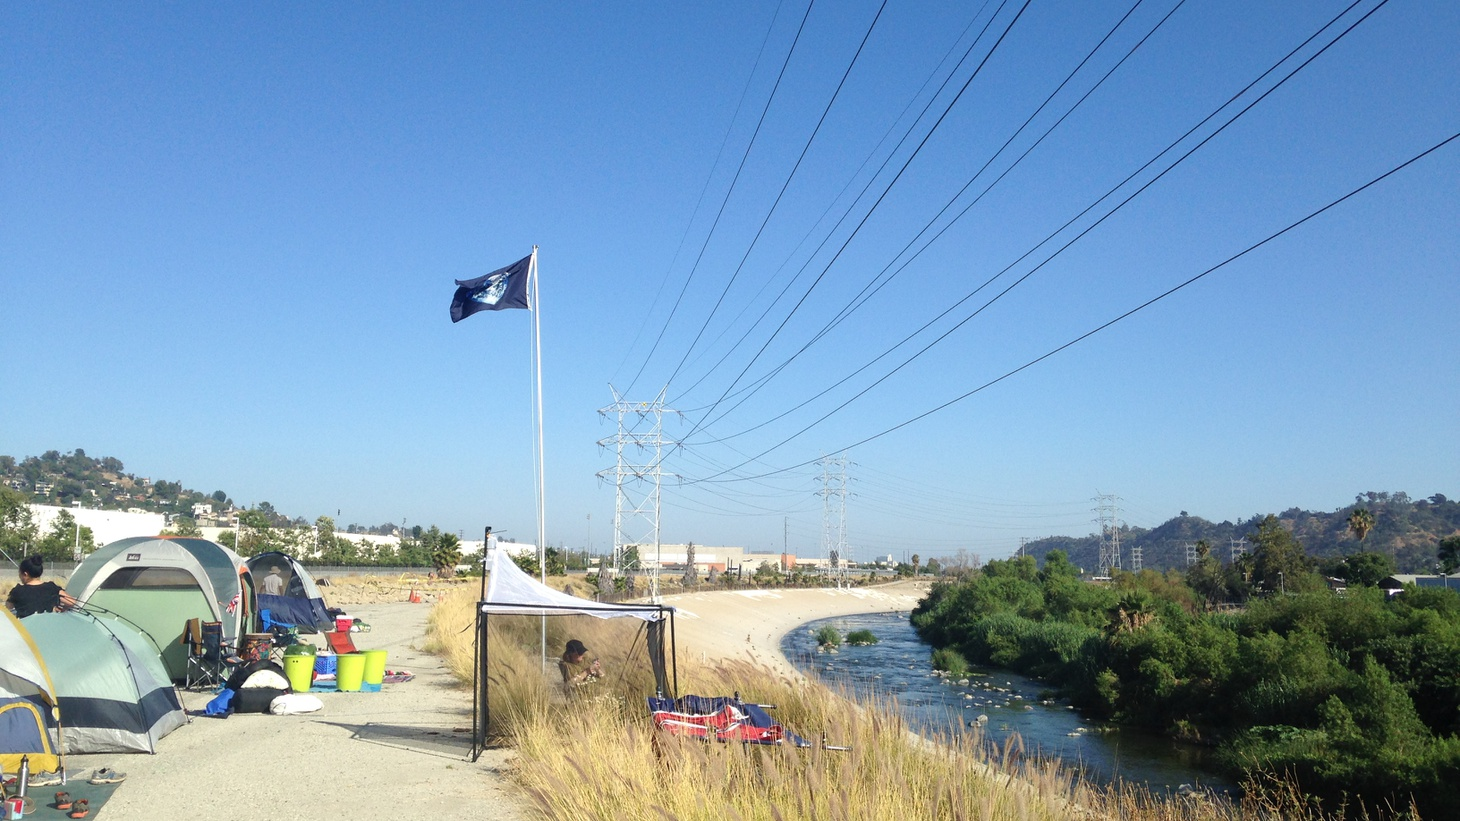 Aside from water, the L.A. River and Malibu's beaches at first glance don't have much in common. But look closer, and you'll find they are two of L.A.'s most underutilized public spaces. We explore both places and how Angelenos are reclaiming them via recreation.